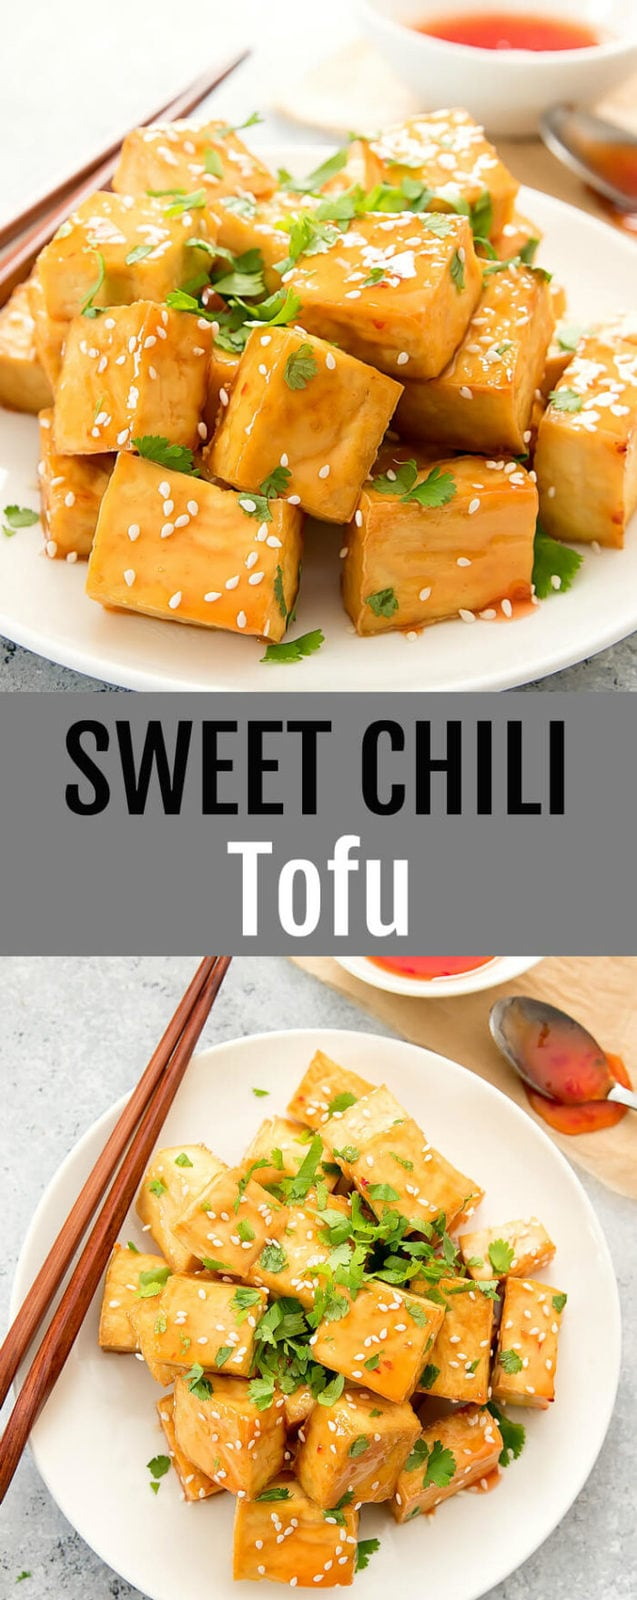 Sweet Chili Tofu